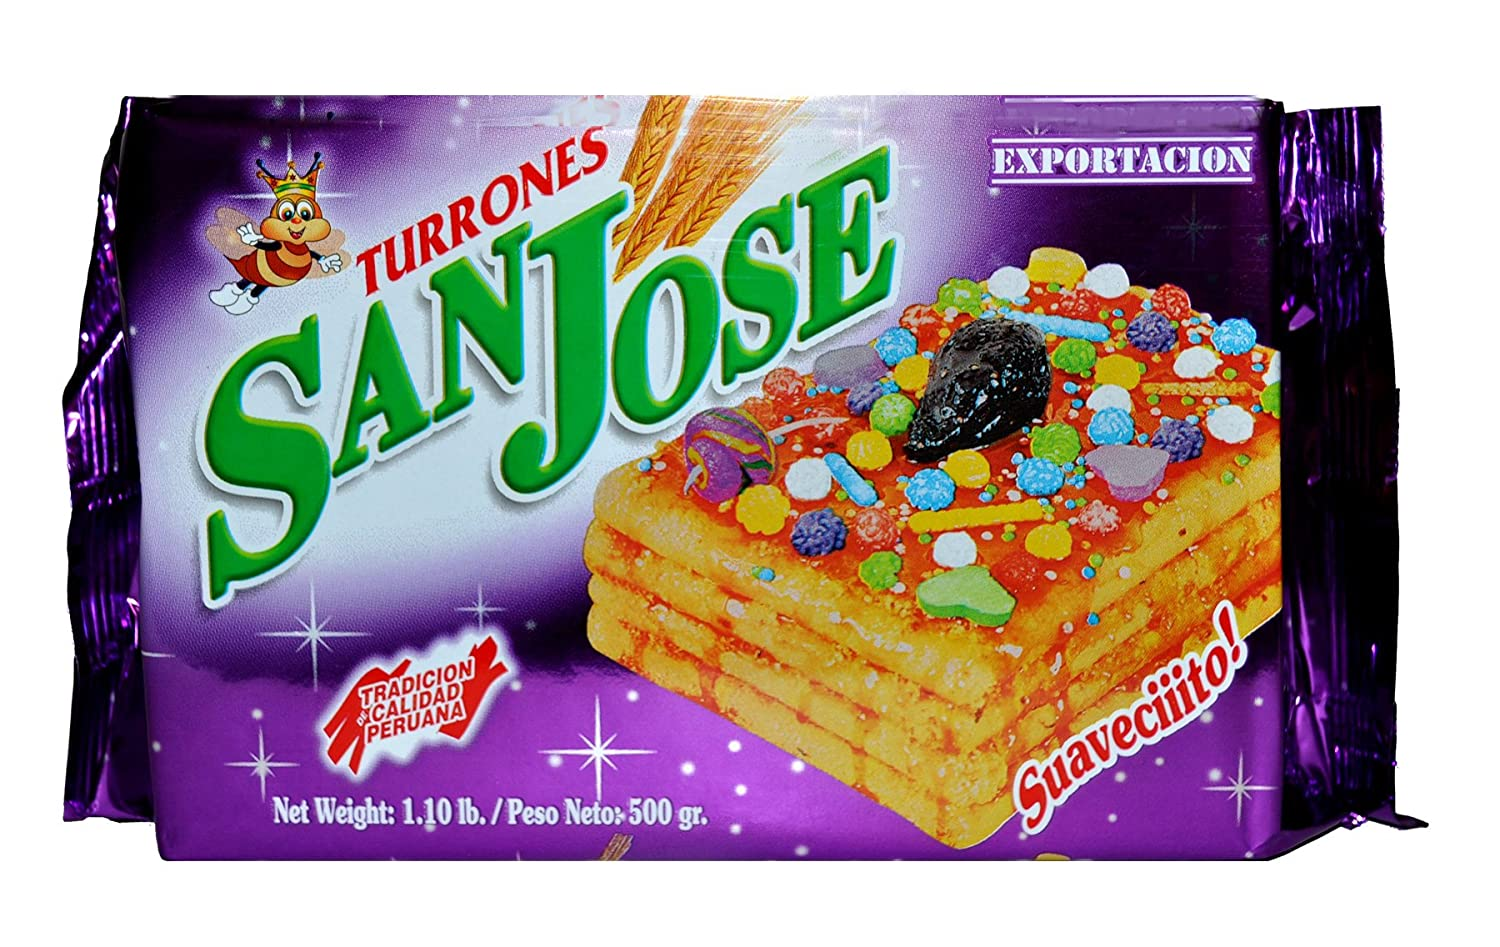 Amazon.com : Turron de Doña Pepa San Jose 1.1 lbs (2 Pack) : Grocery & Gourmet Food